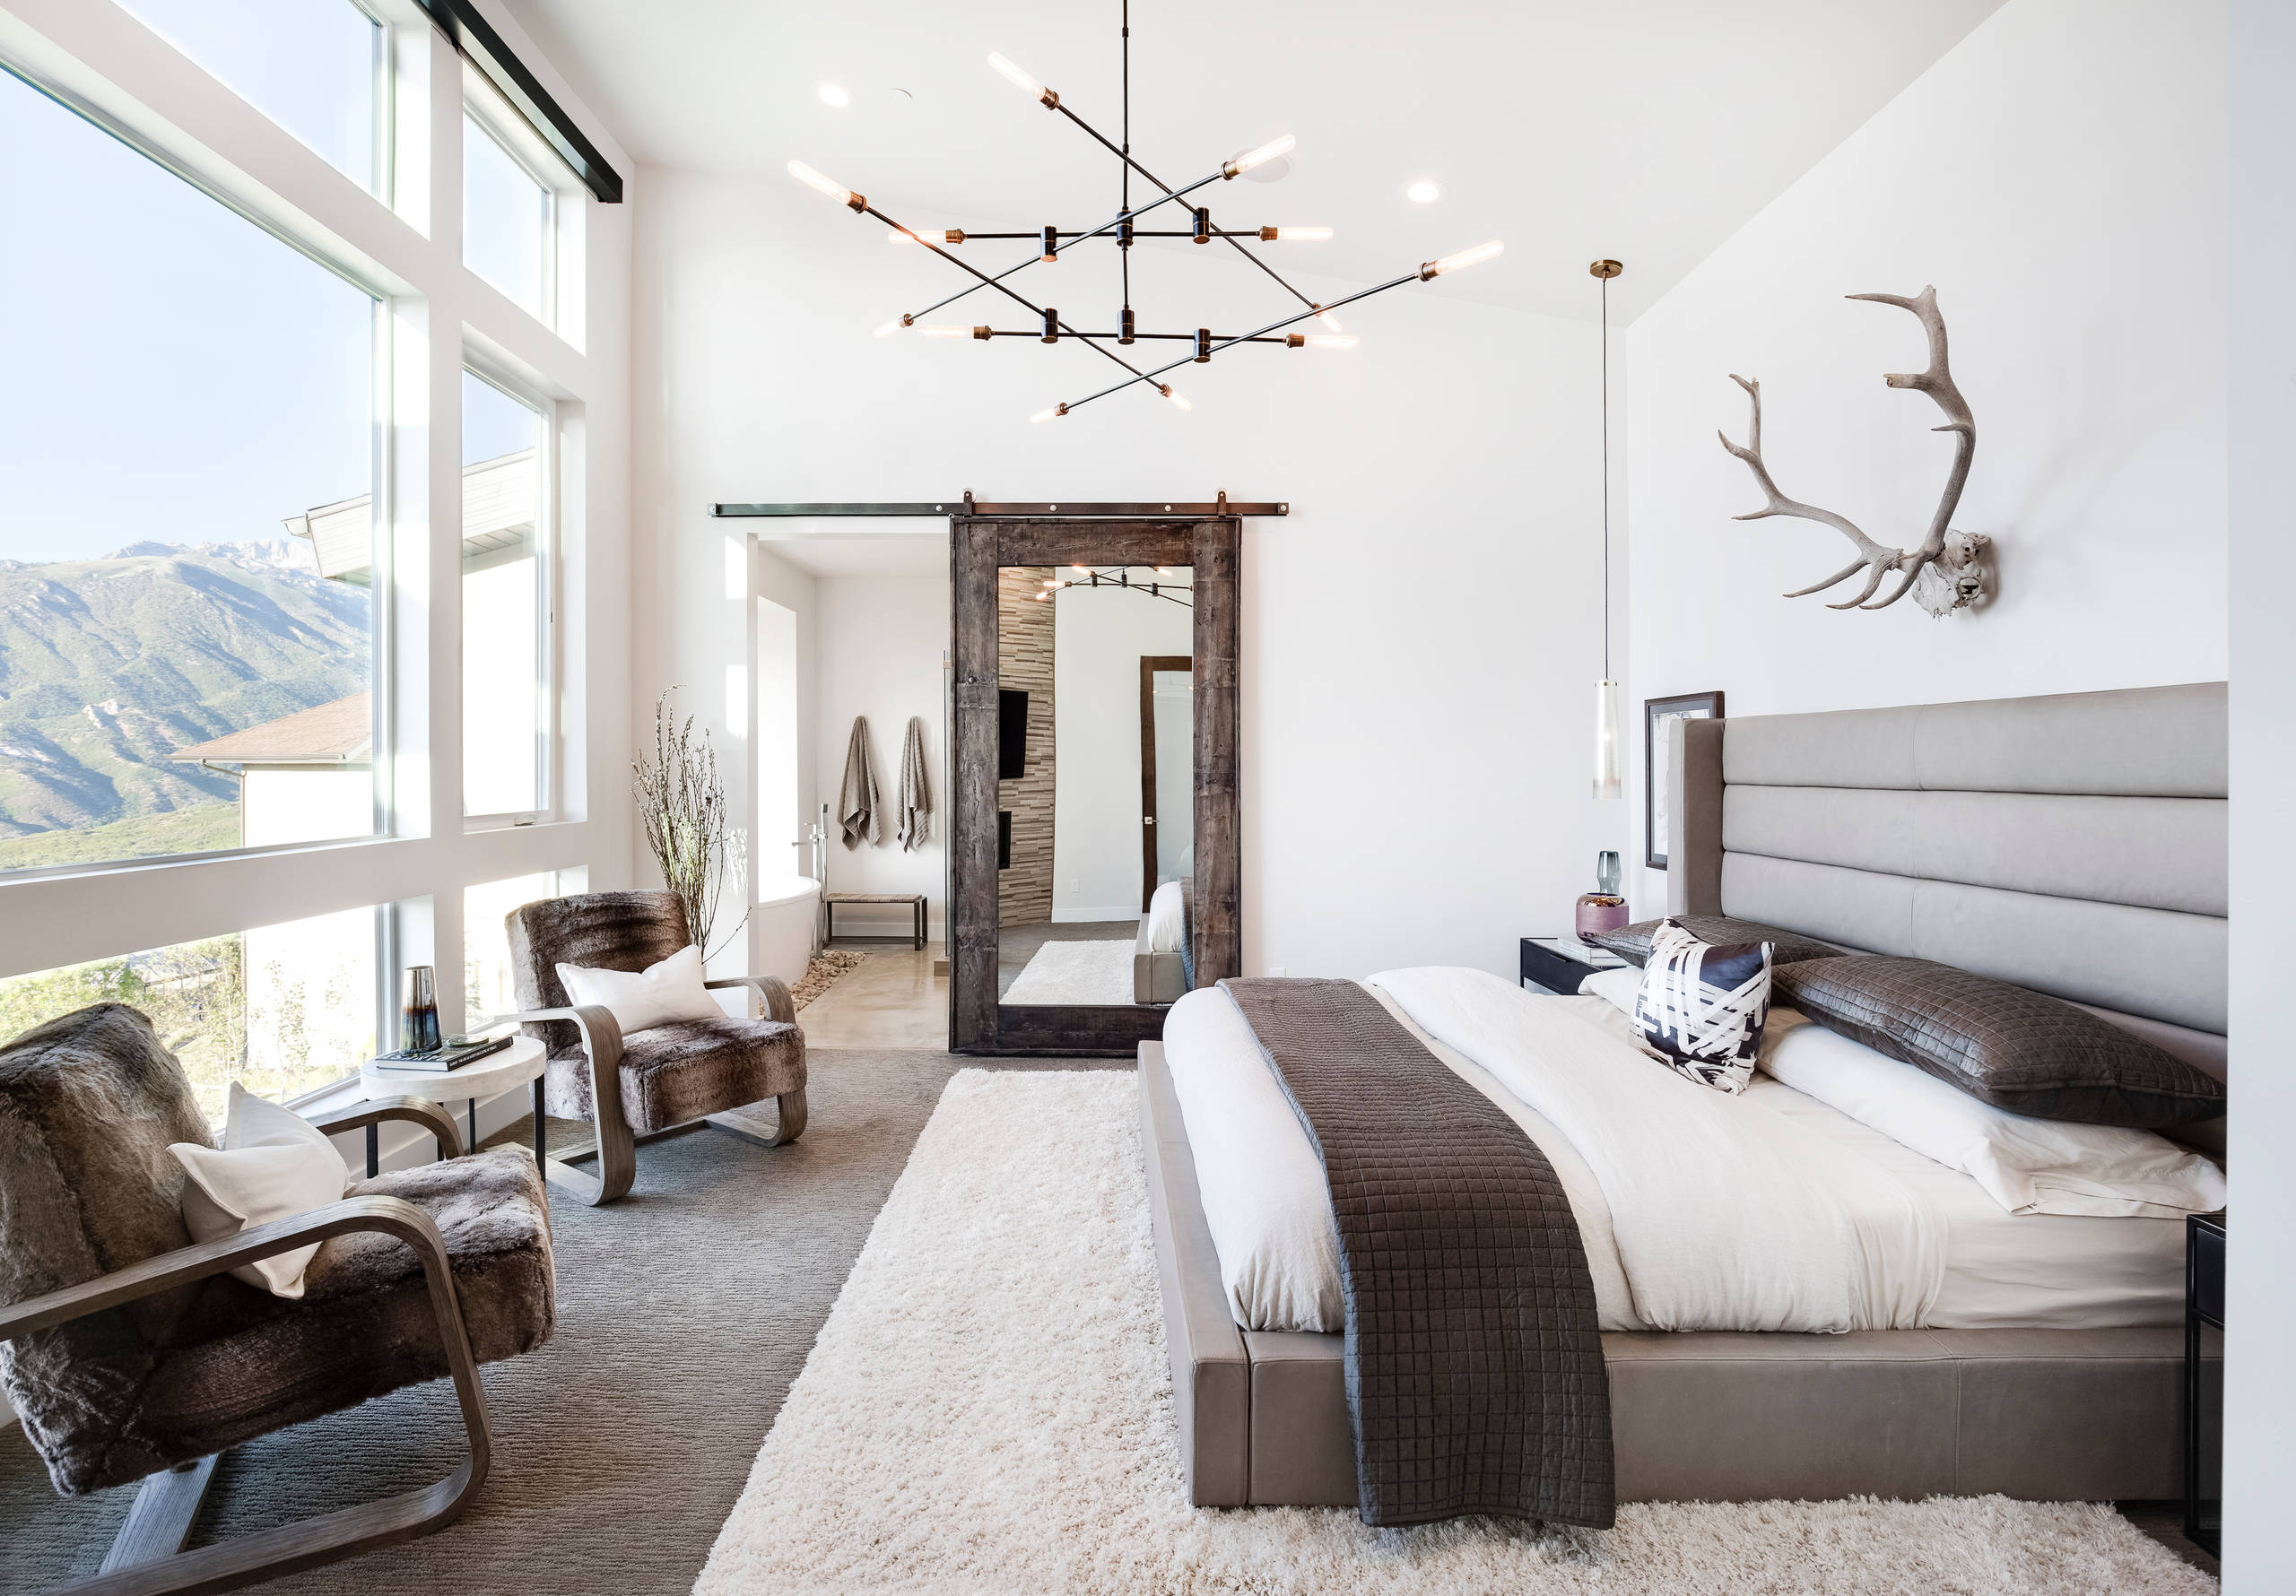 9 Beautiful Rustic Bedroom Pictures & Ideas - January, 9  Houzz